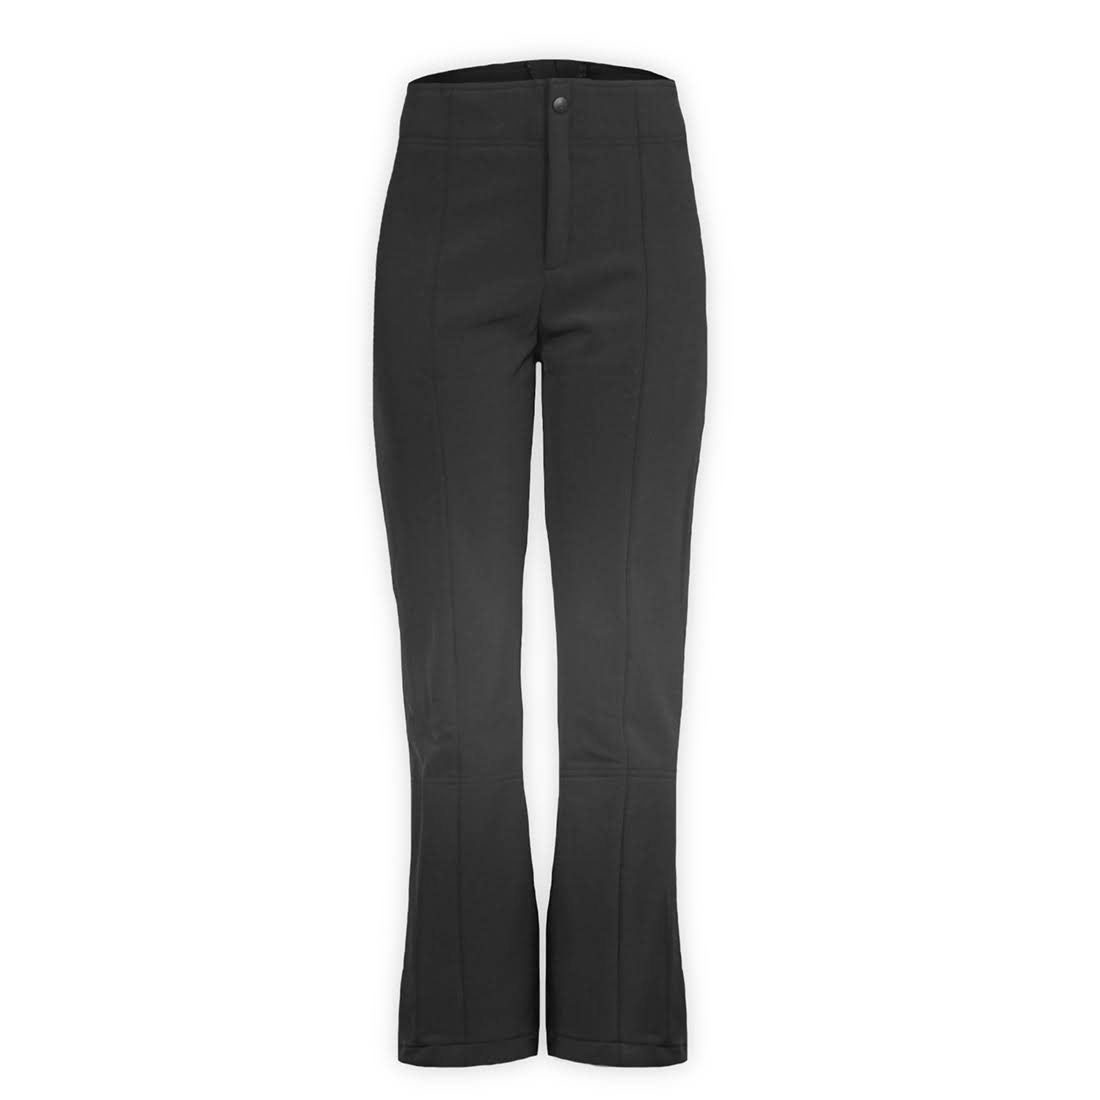 Outdoor Gear Womens Intrigue OTB Pant - Black, Size 10